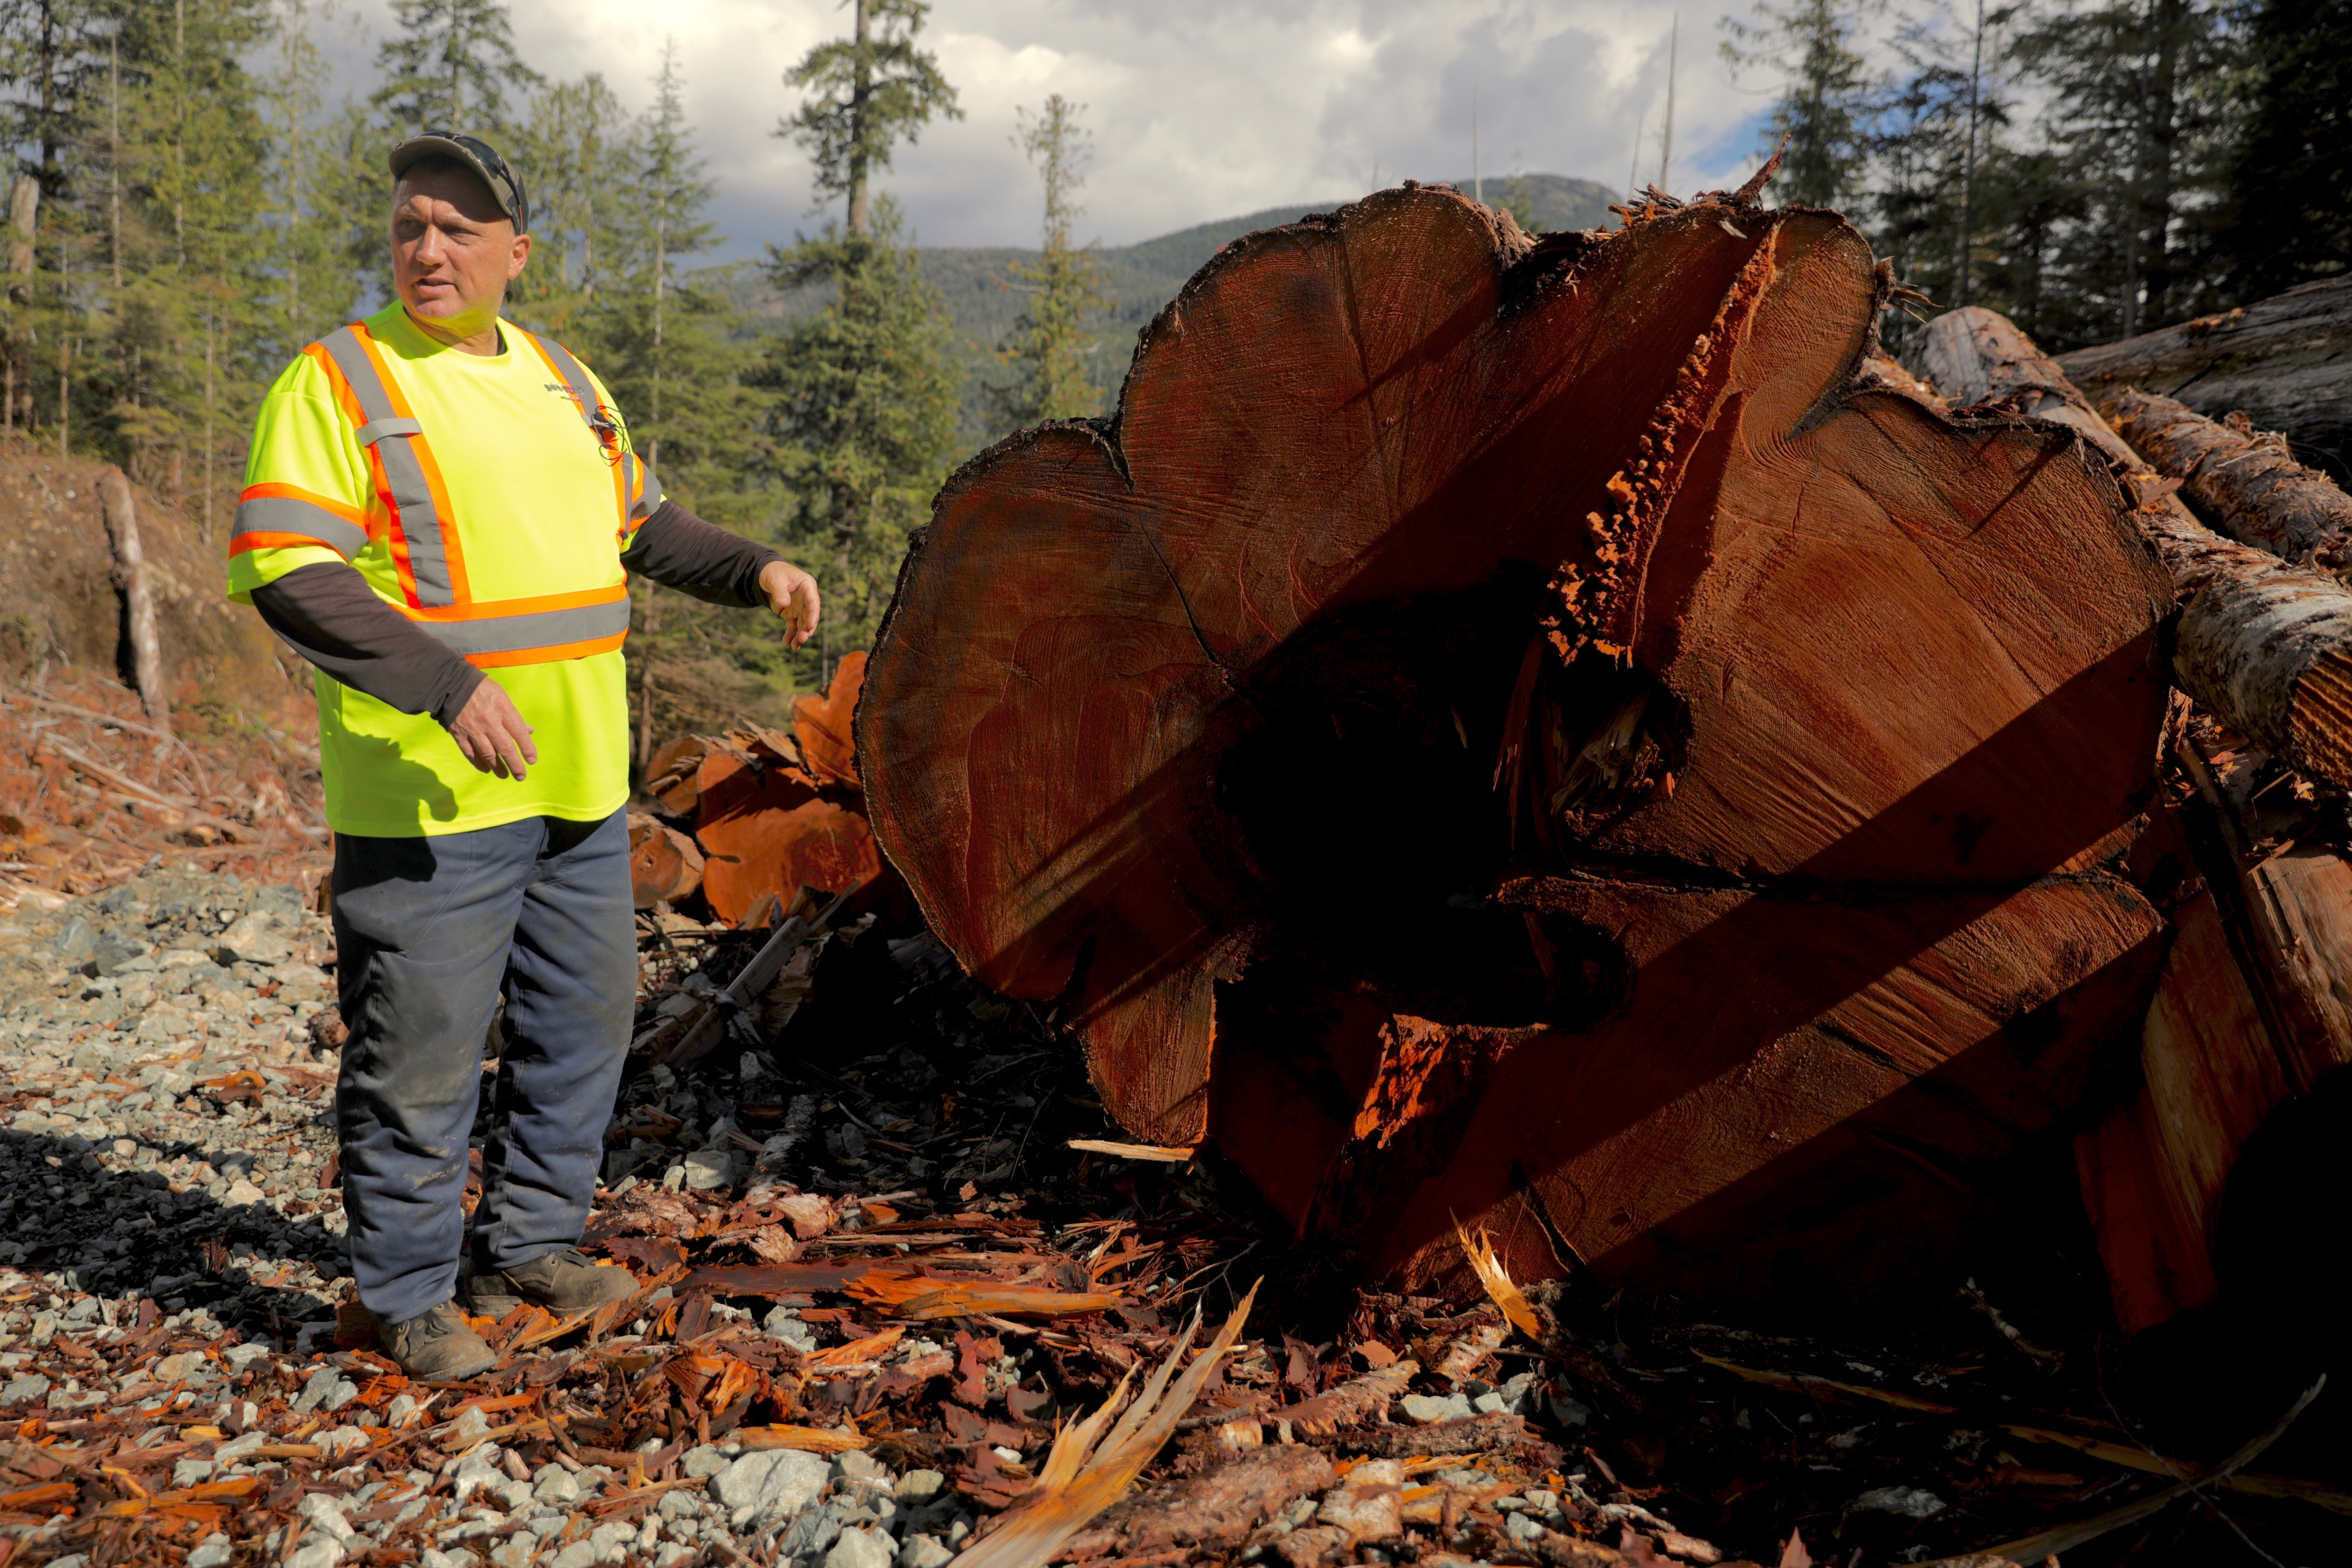 Forestry manager Zoltan Schafer shows an old-growth cedar in the Nahmint Valley. (Chris Corday/CBC)